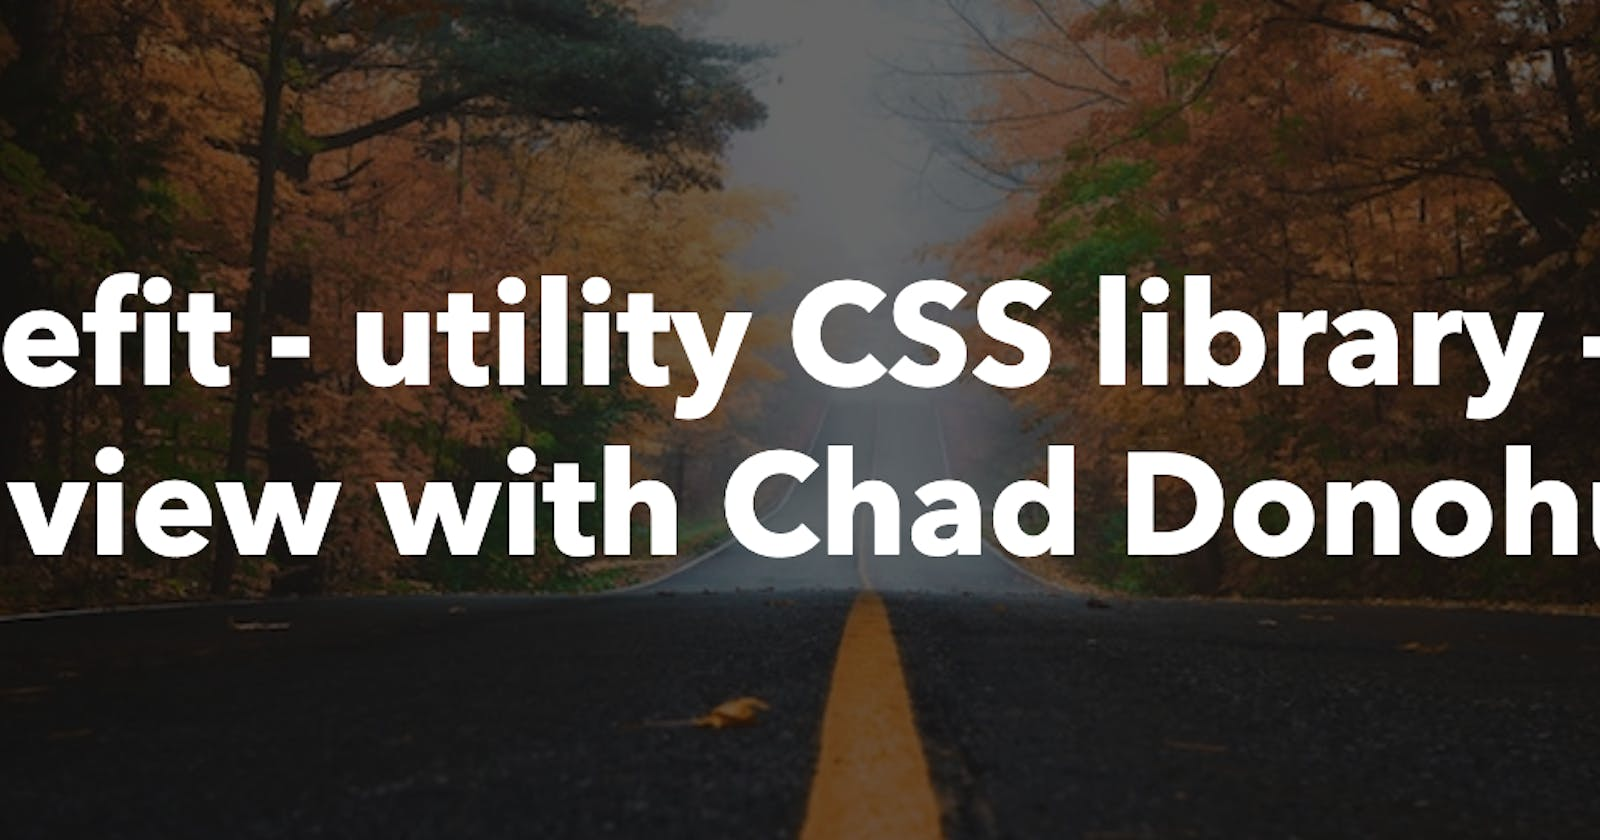 Interview of Chad Donohue  - The author of Benefit, utility CSS library for React